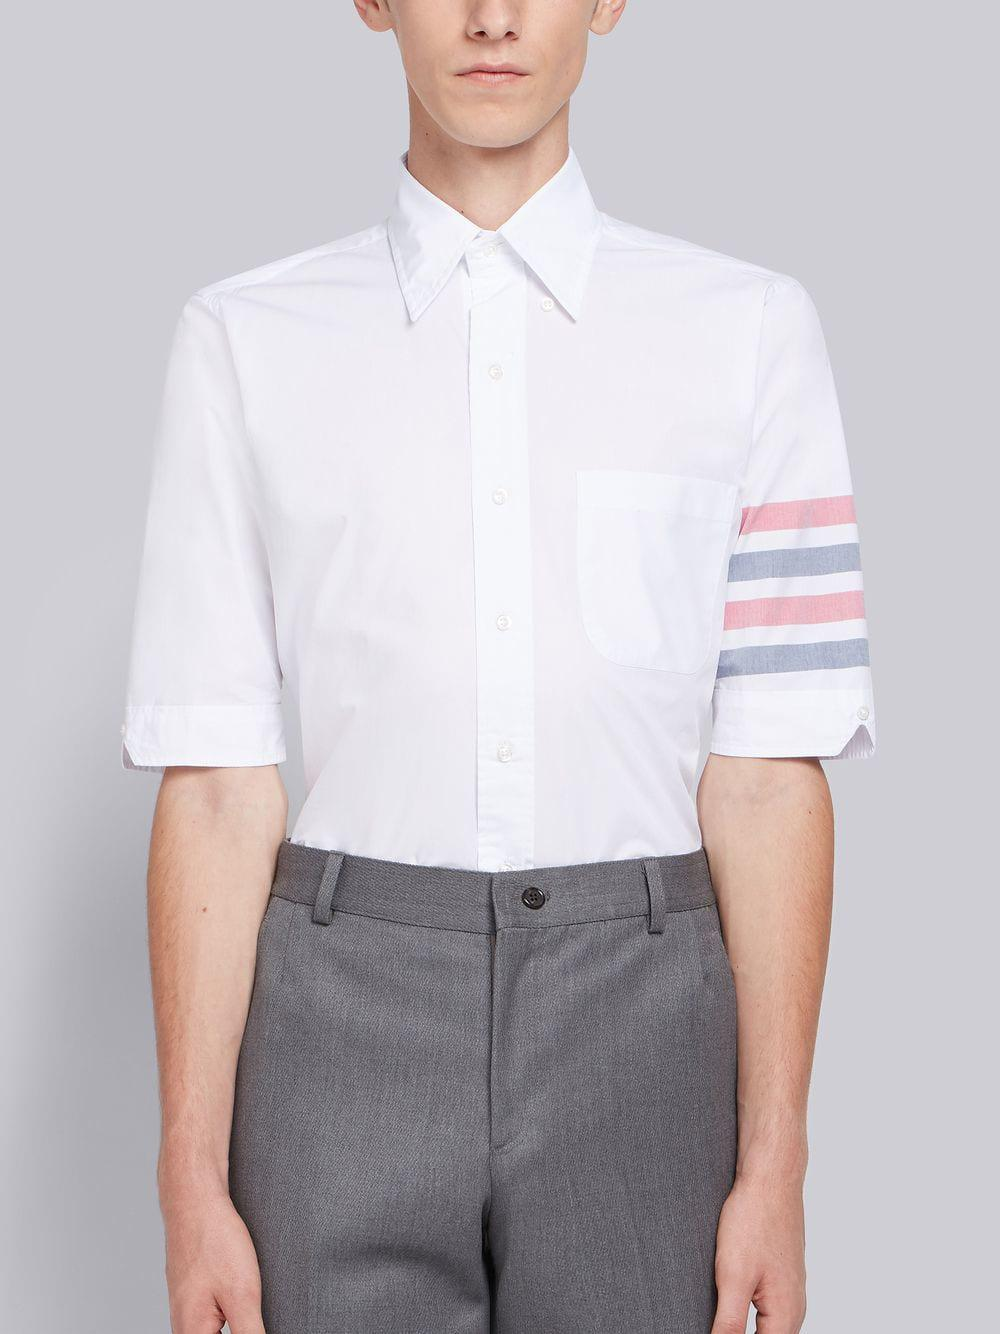 8022b4bee19 Thom Browne Woven 4-bar Armband Poplin Shirt in White for Men - Lyst